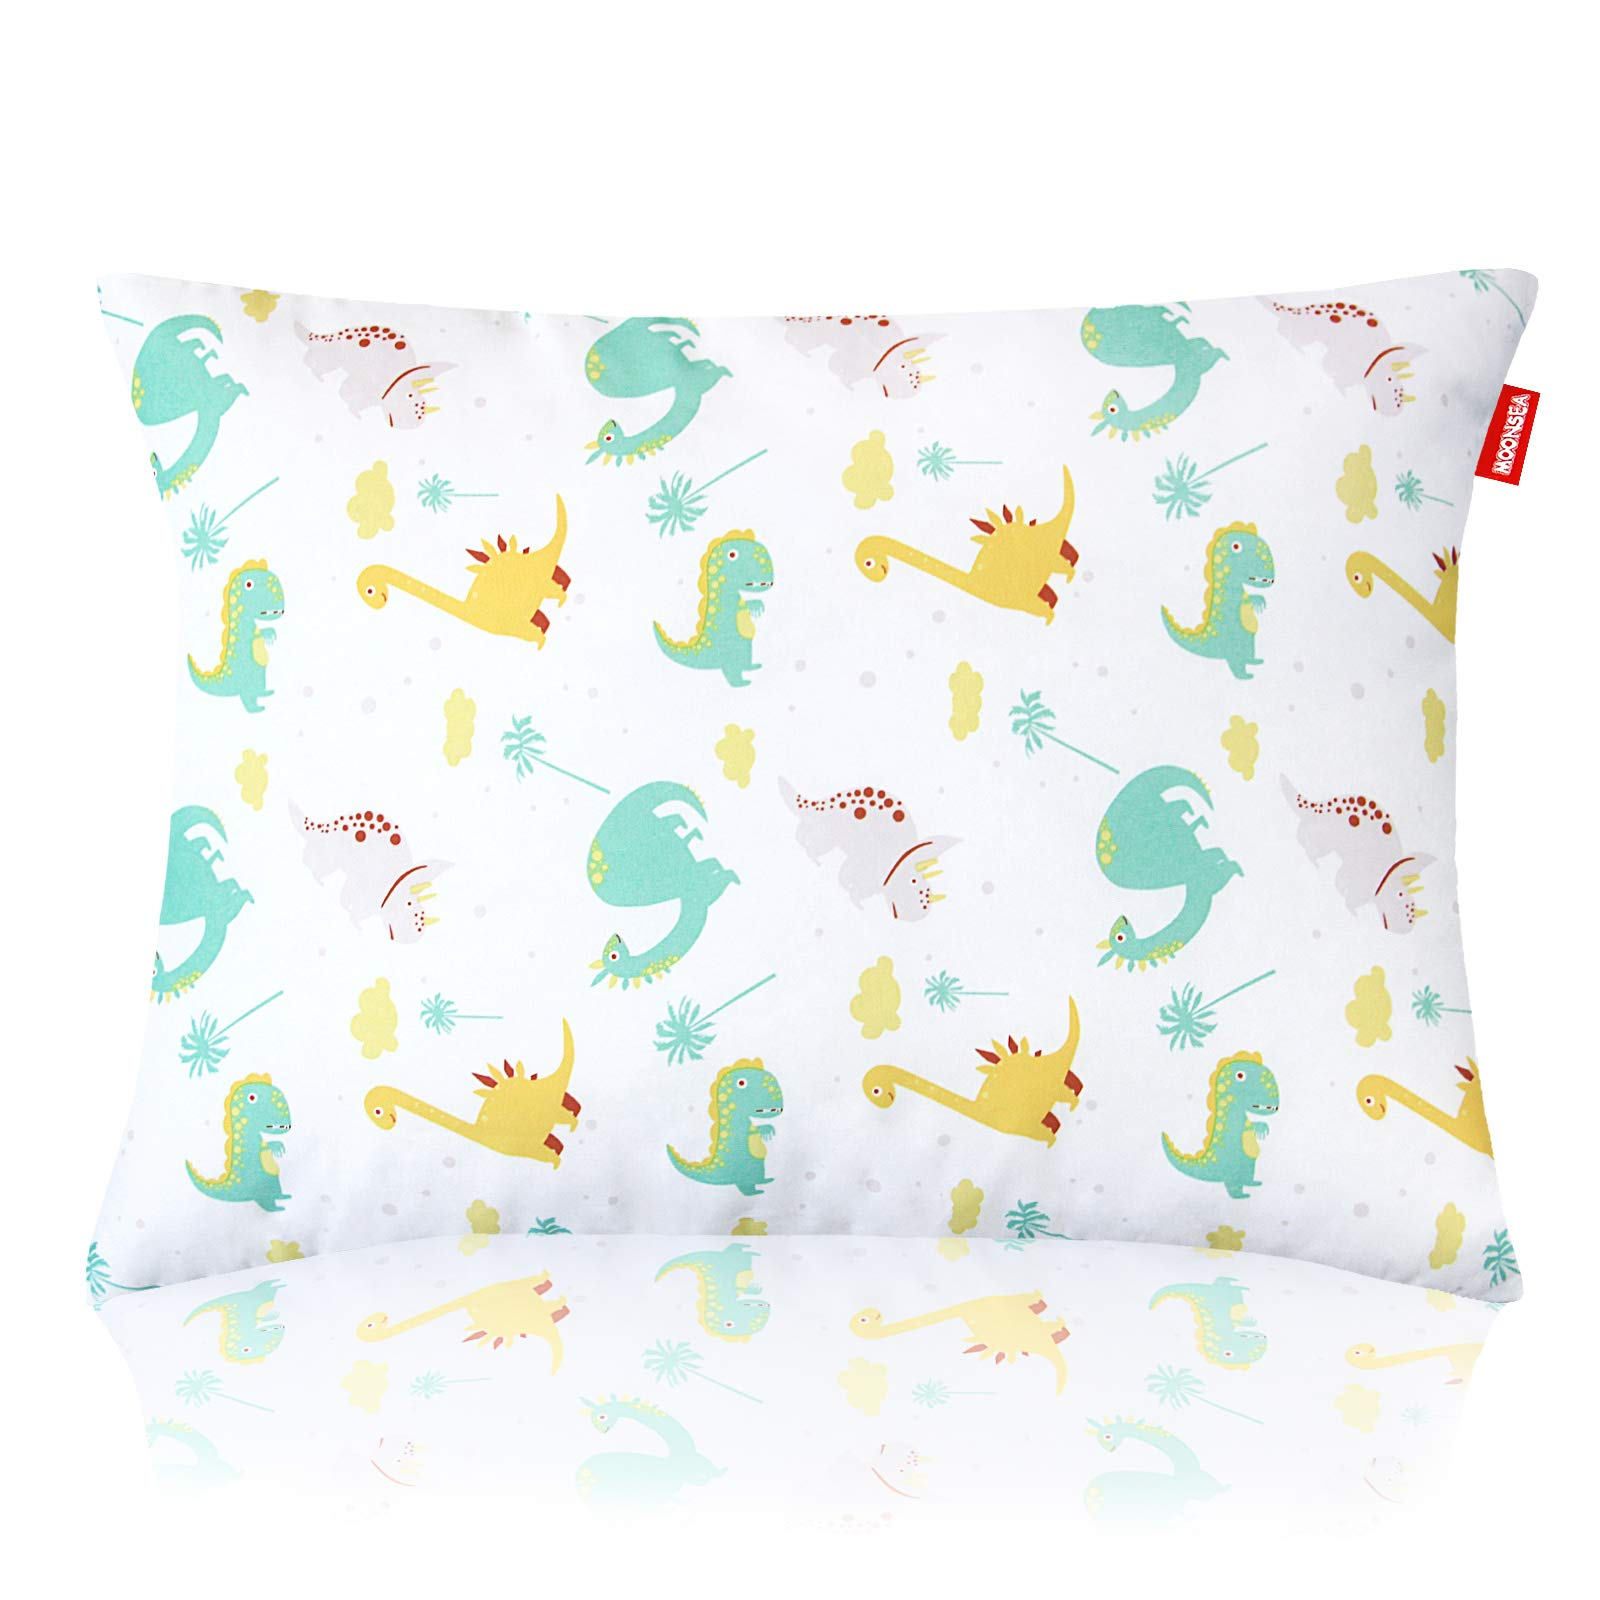 Print Toddler Pillow for Sleeping, Dinosaur Pillow for Baby, Washable Ultra Soft Kids Pillows Perfect for Travel, Toddler Cot, Baby Crib, 14 x 19 inch No Pillowcase Needed (Dinosaur)